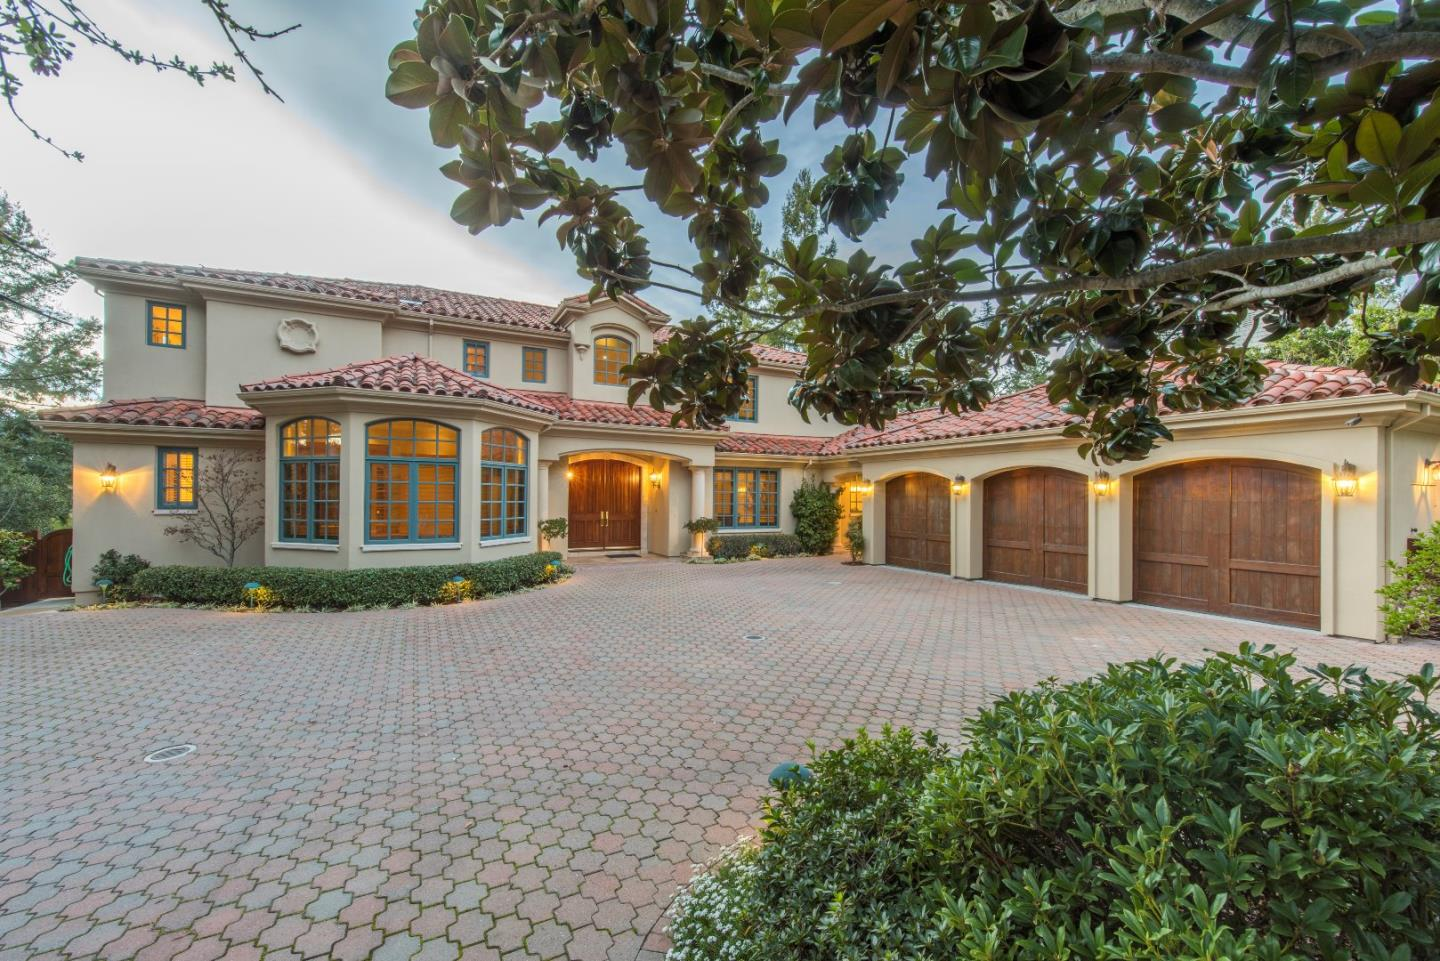 Single Family Home for Sale at 1155 Trinity Drive 1155 Trinity Drive Menlo Park, California 94025 United States